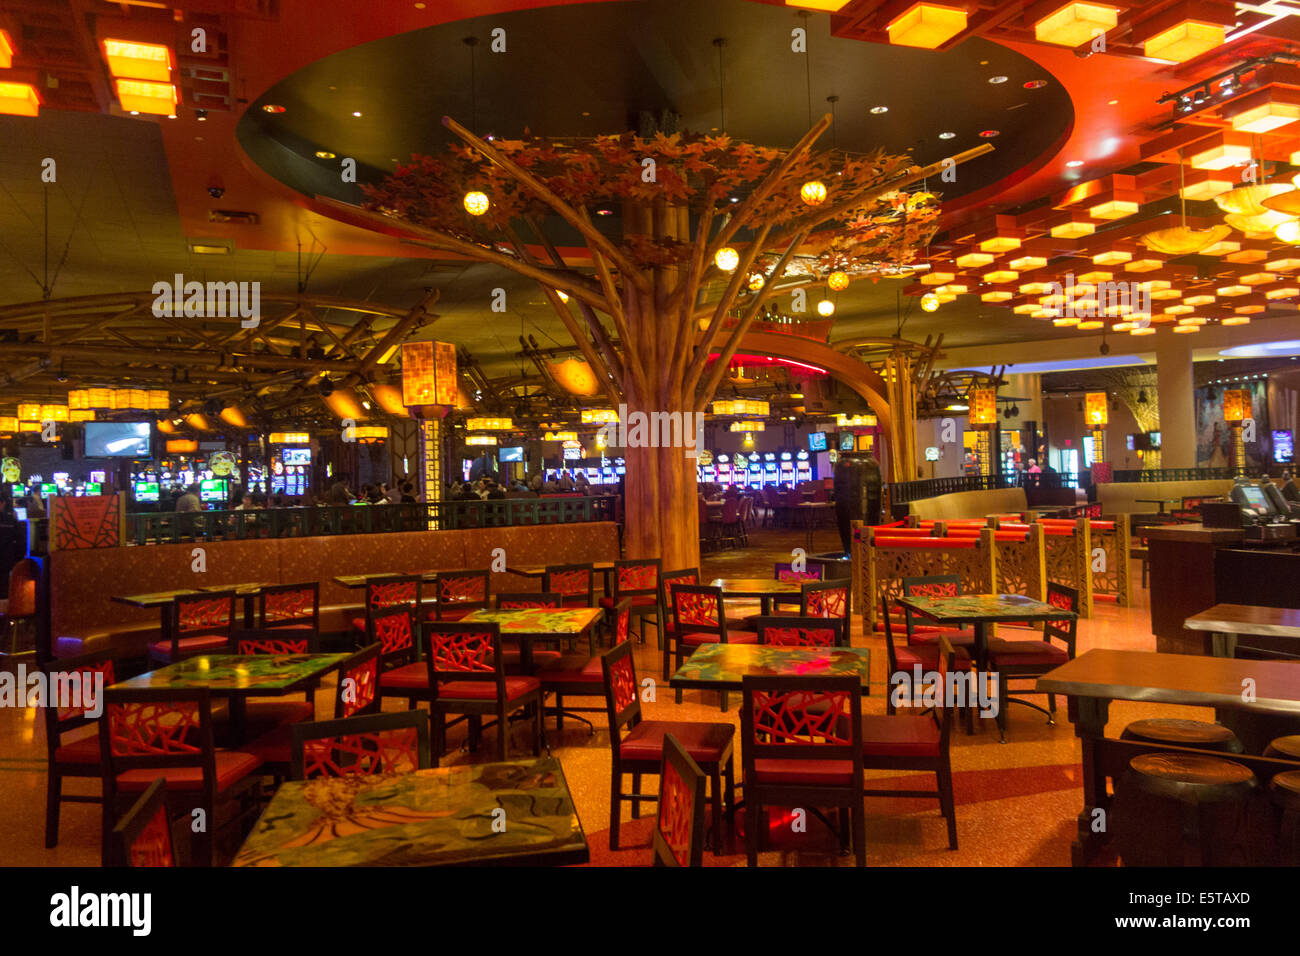 Casinos Connecticut Mohegan Sun Roxy Movies Santa Rosa